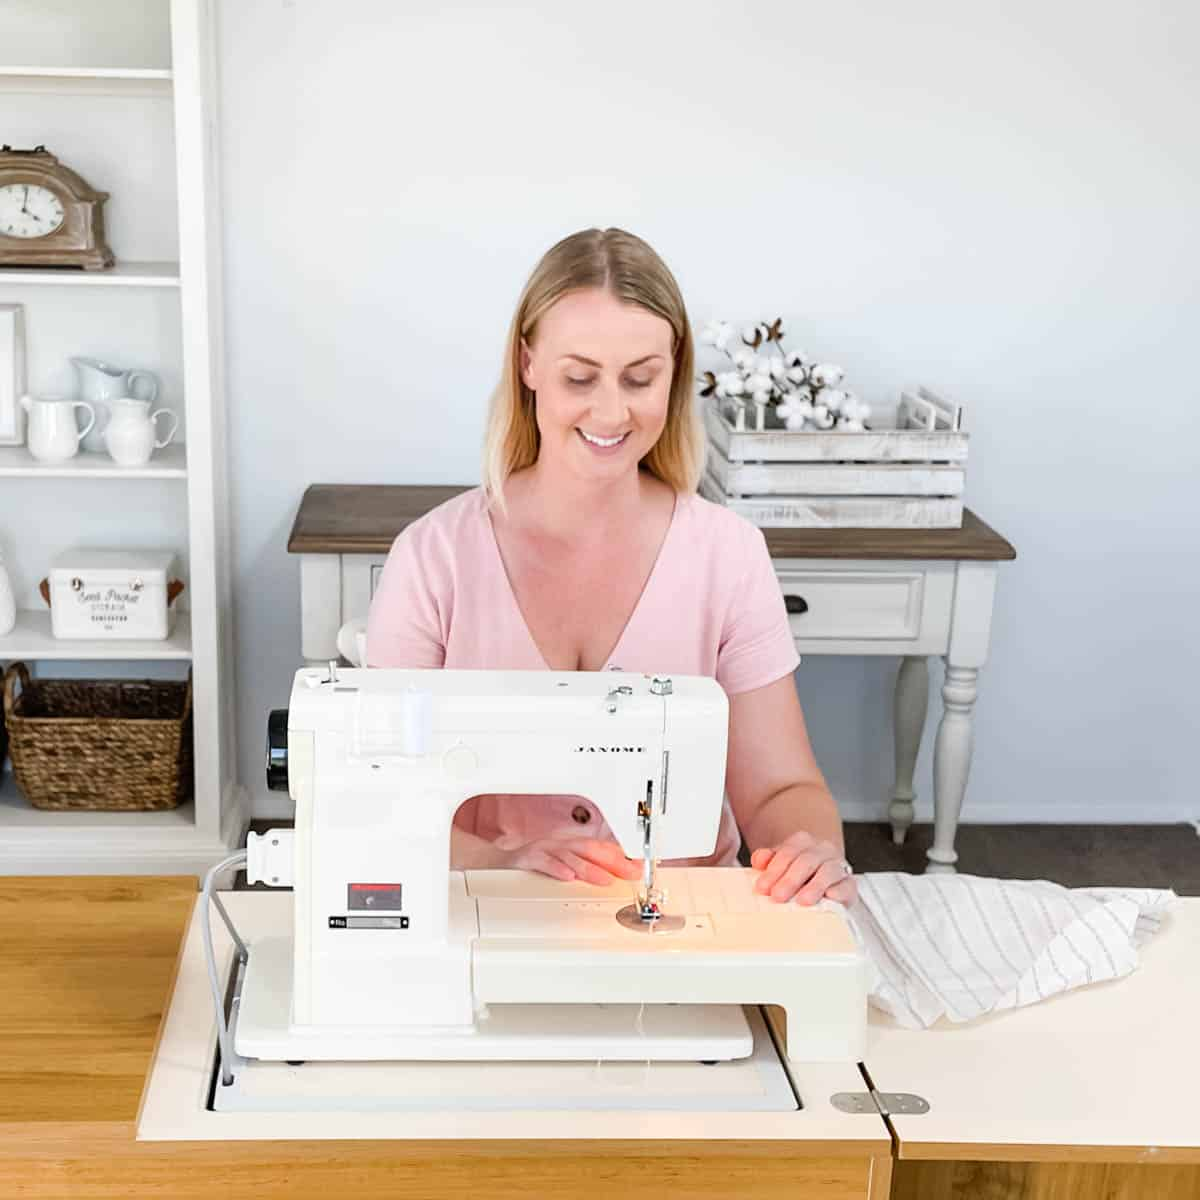 Image of Emily sitting at the sewing machine sewing white and blue striped fabric